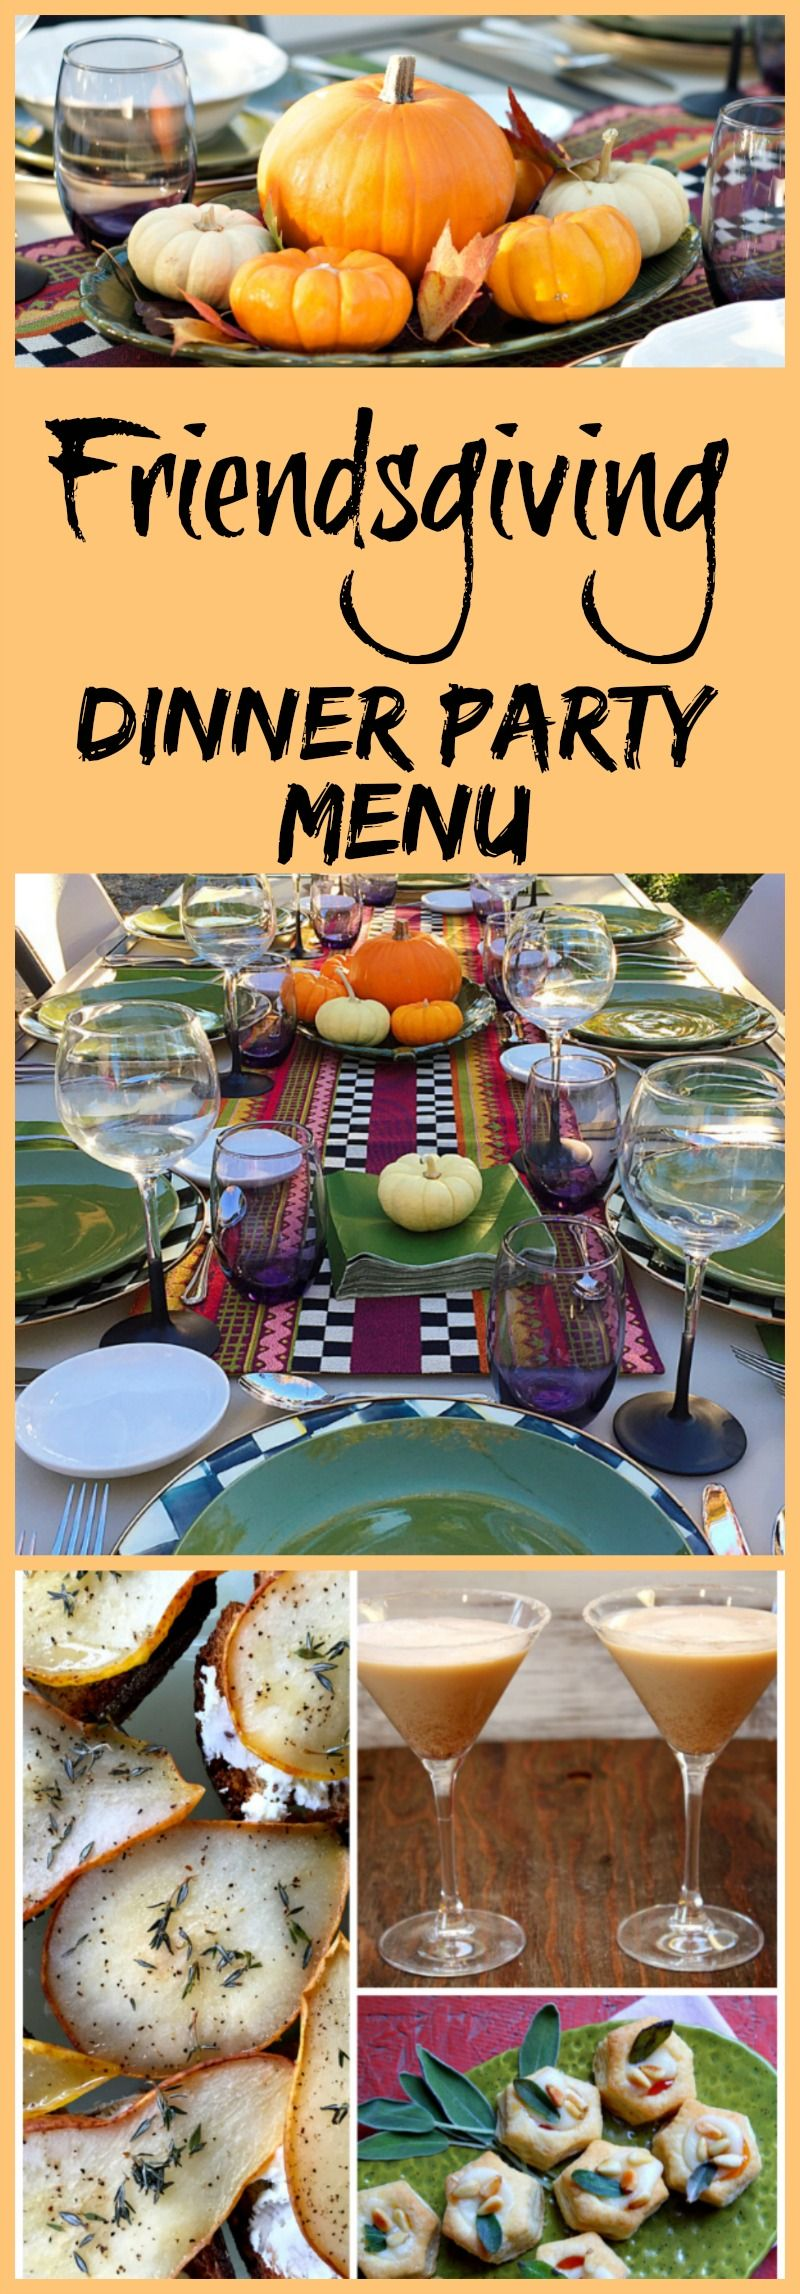 Fall Dinner Party Menu Suggestions Part - 38: Friendsgiving Dinner Party Menu